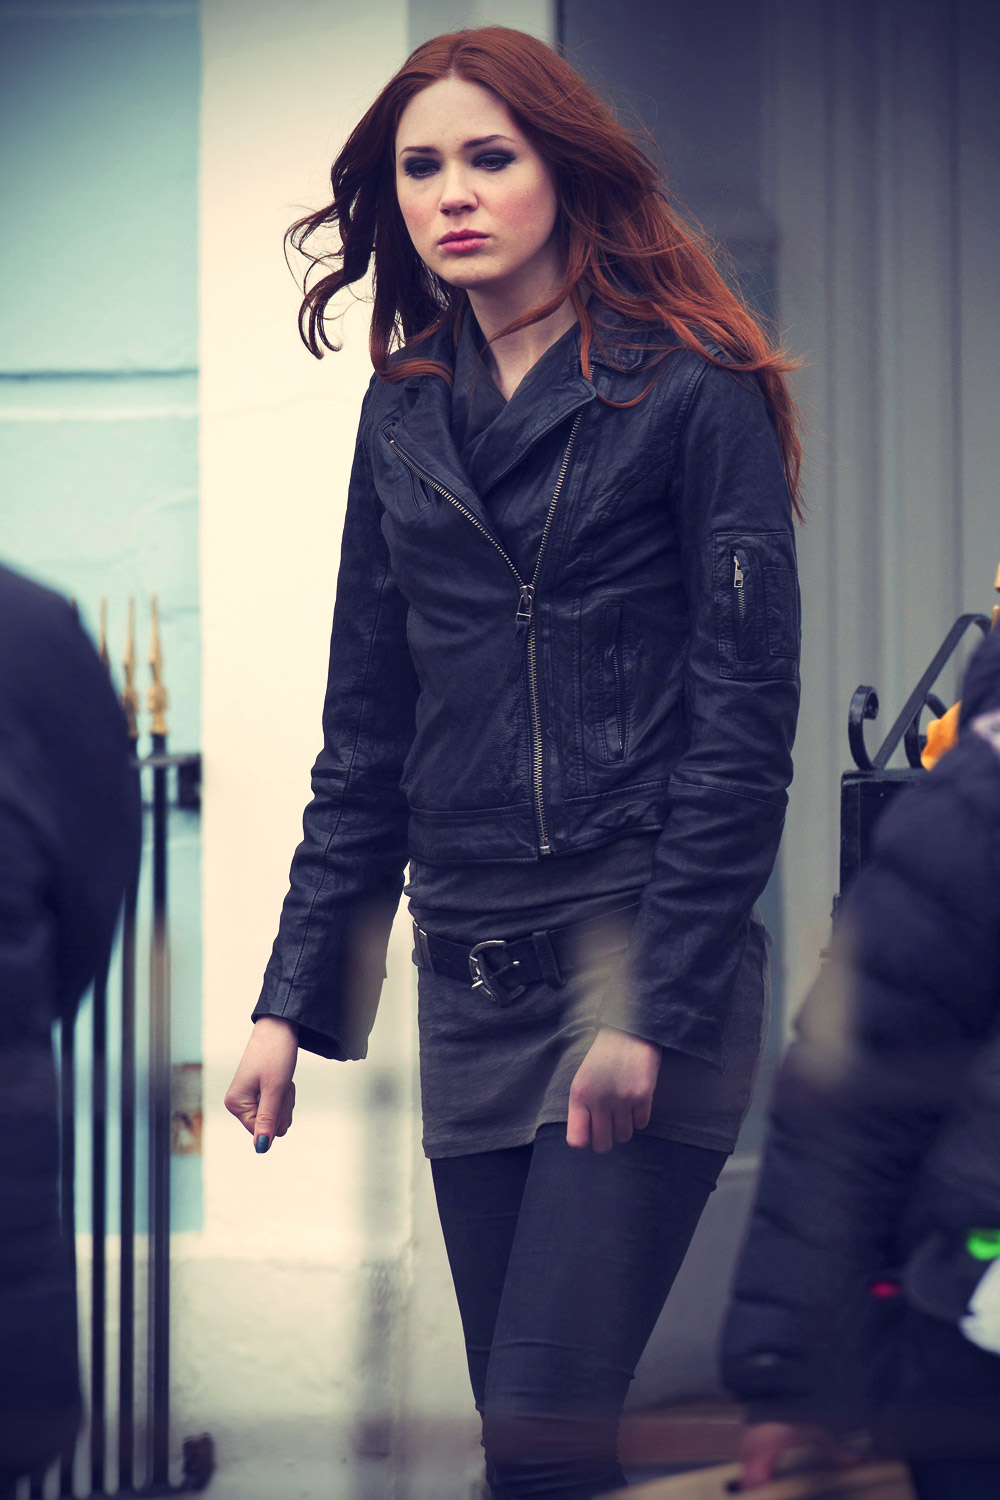 Karen Gillan at Doctor Who set